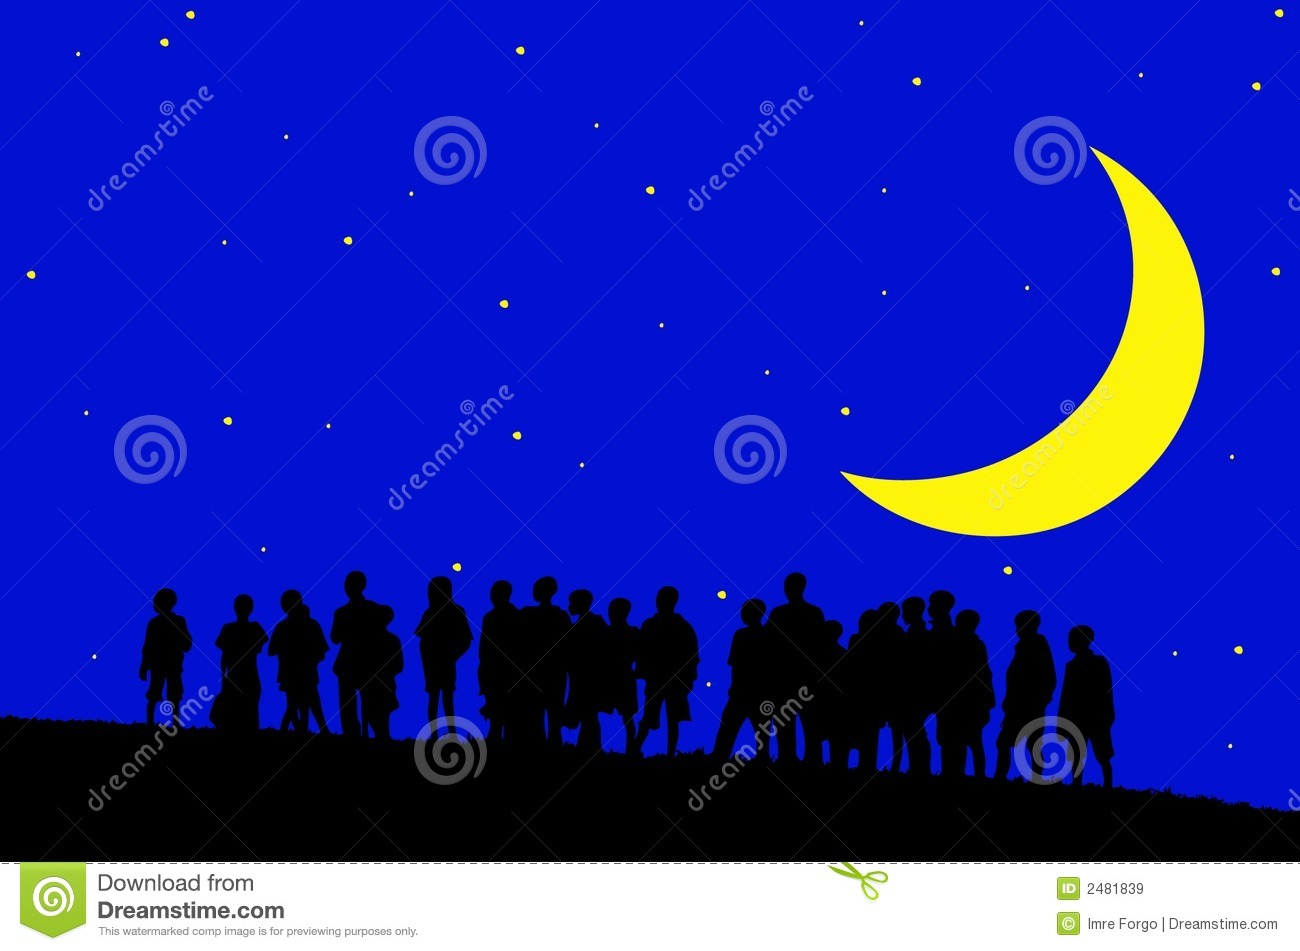 Kids at night with moon royalty free stock photography image - Children In Moonlight Royalty Free Stock Images